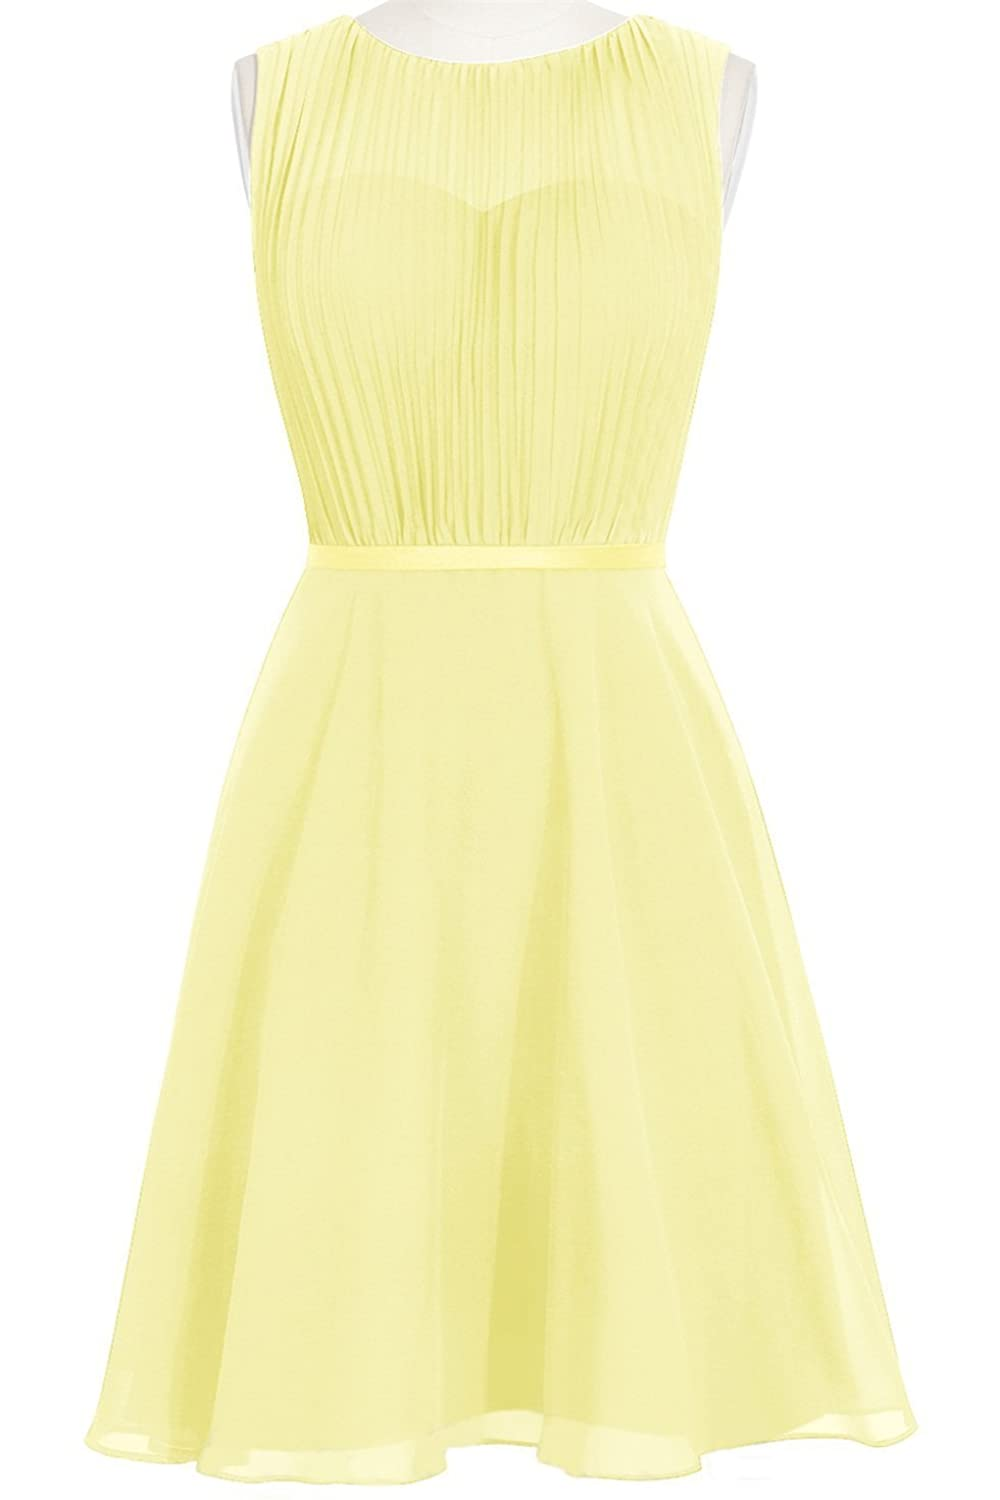 MittyDresses 2015 New Cocktail Homecoming Dresses for Girl Evening Party Size 18W US Daffodil